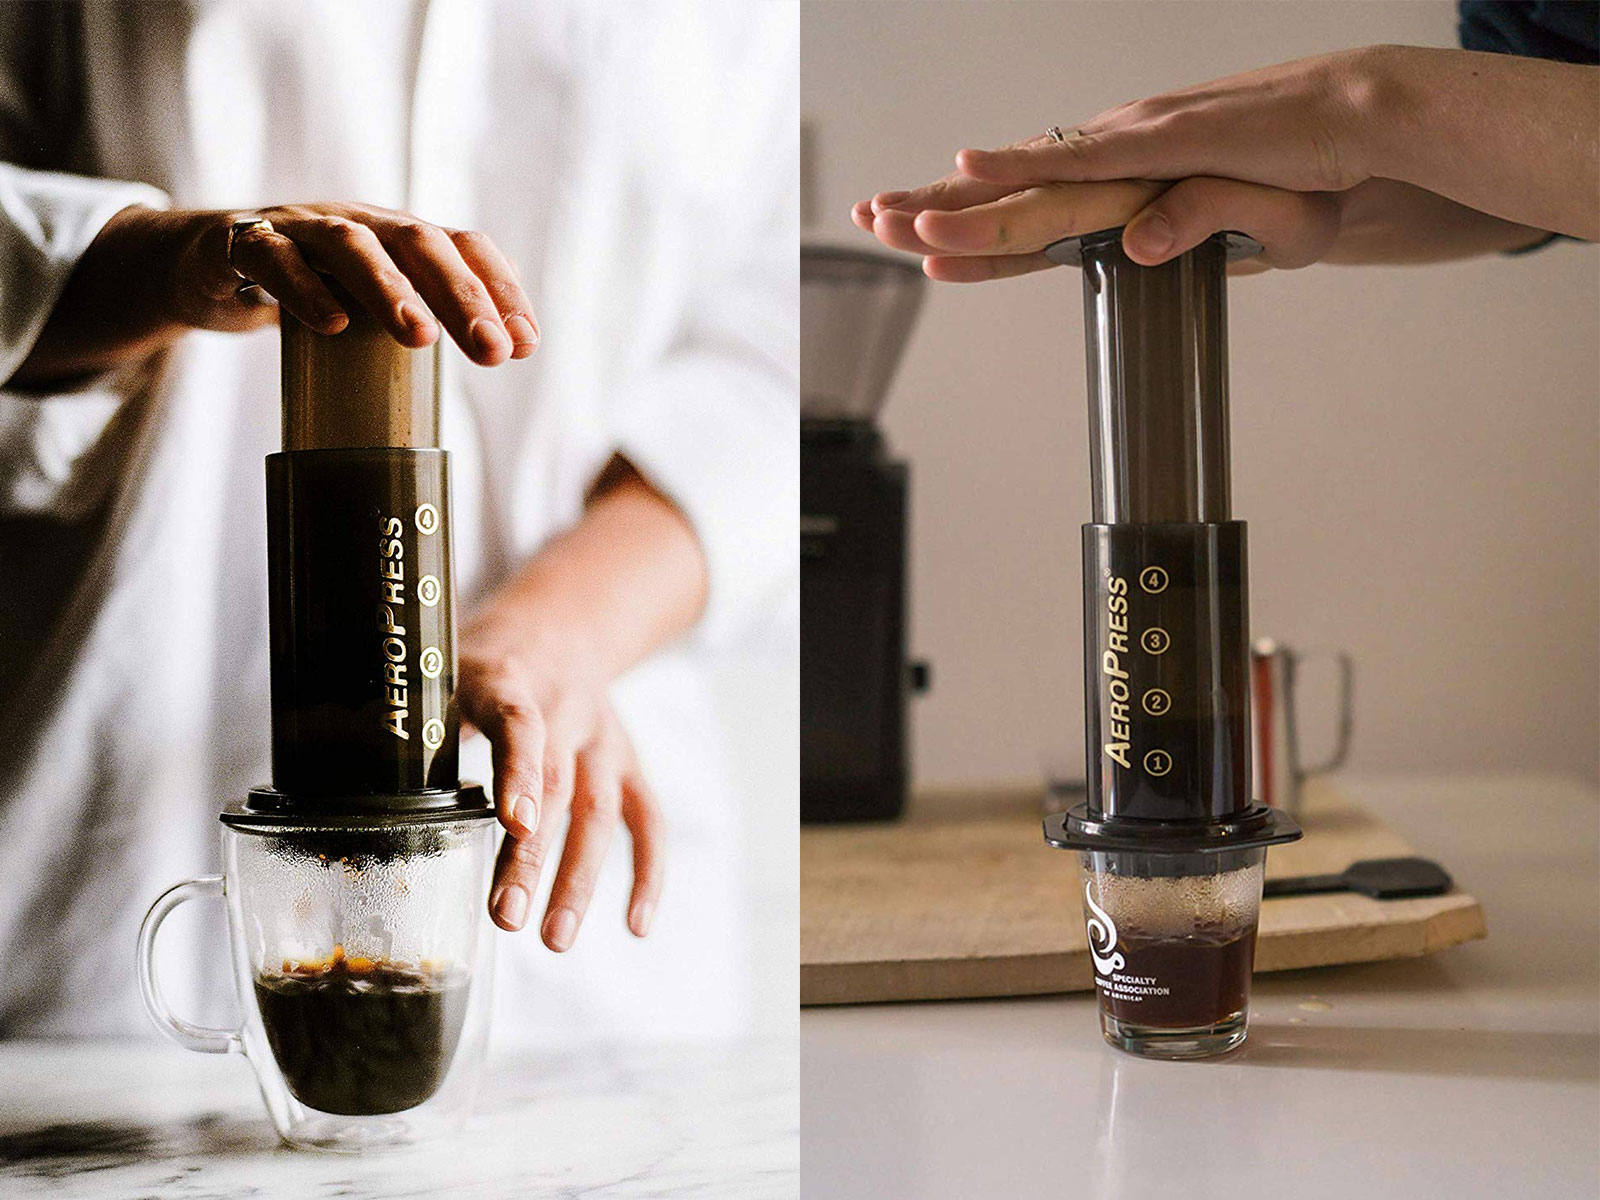 This 2-Minute Coffee Maker Will Speed Up Your Morning Routine